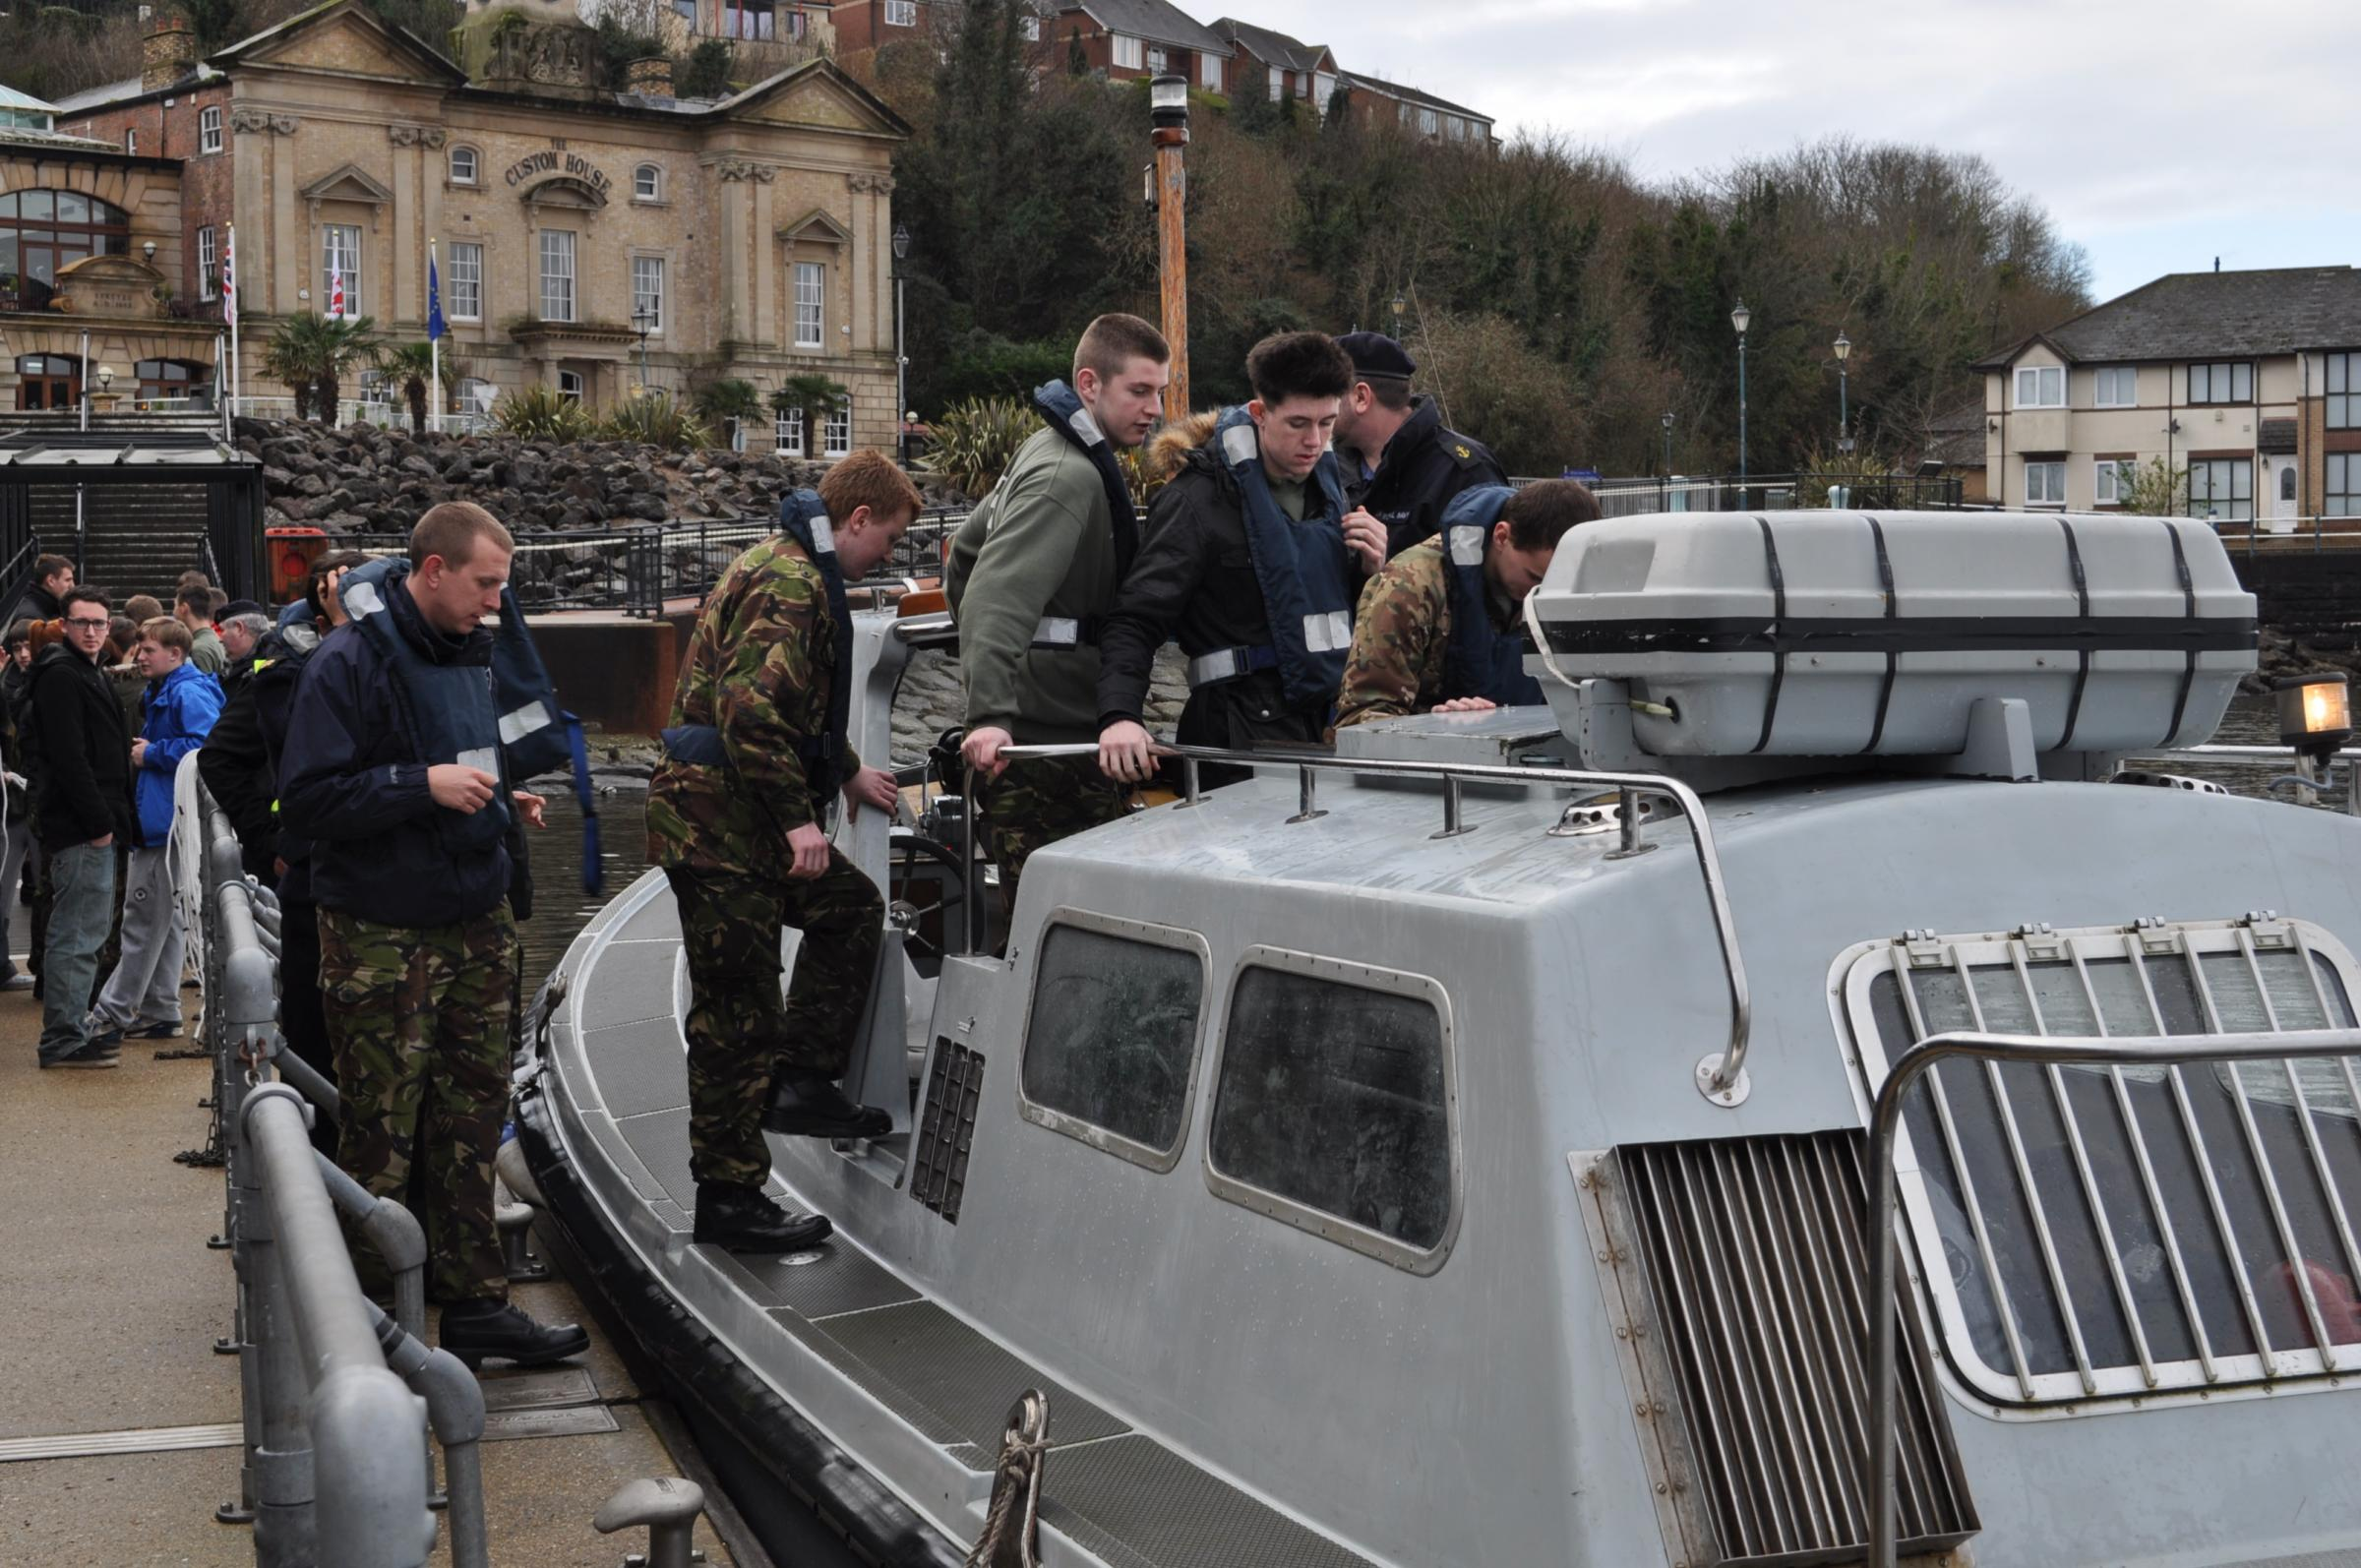 ALL ABOARD: Students from Military Preparation College Cardiff boarding a Royal Navy Reserve (RNR) launch at Penarth Marina